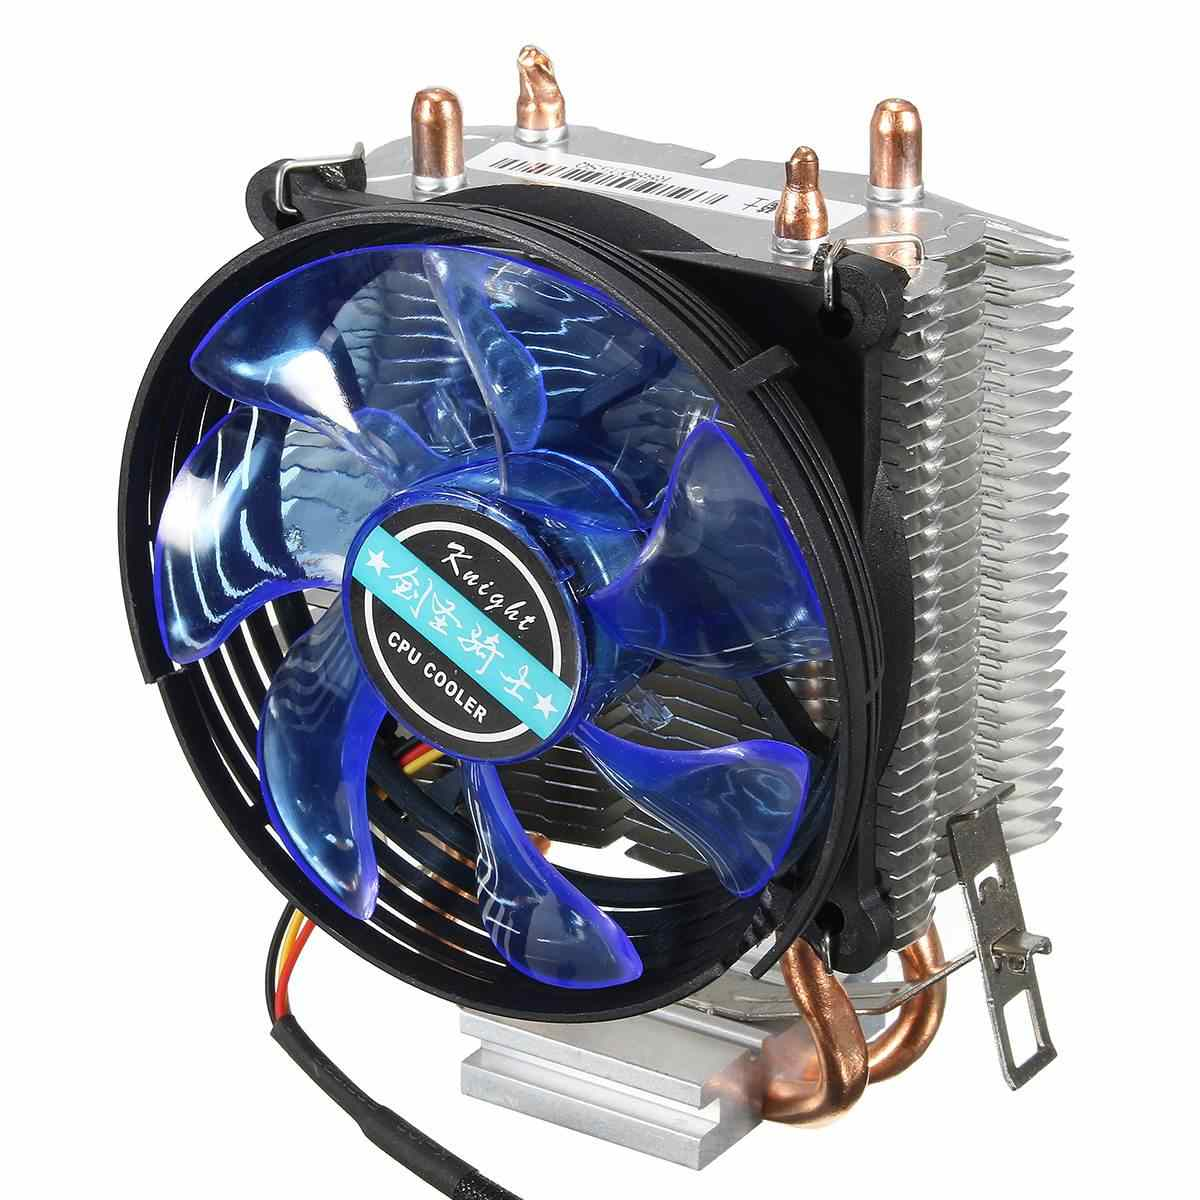 95x95x25mm LED Cooler Cpu Fan Heatsink Copper for Intel LGA775/1156/1155 for AMD AM2/AM2+/AM3 New Computer Cooling Fan For CPU